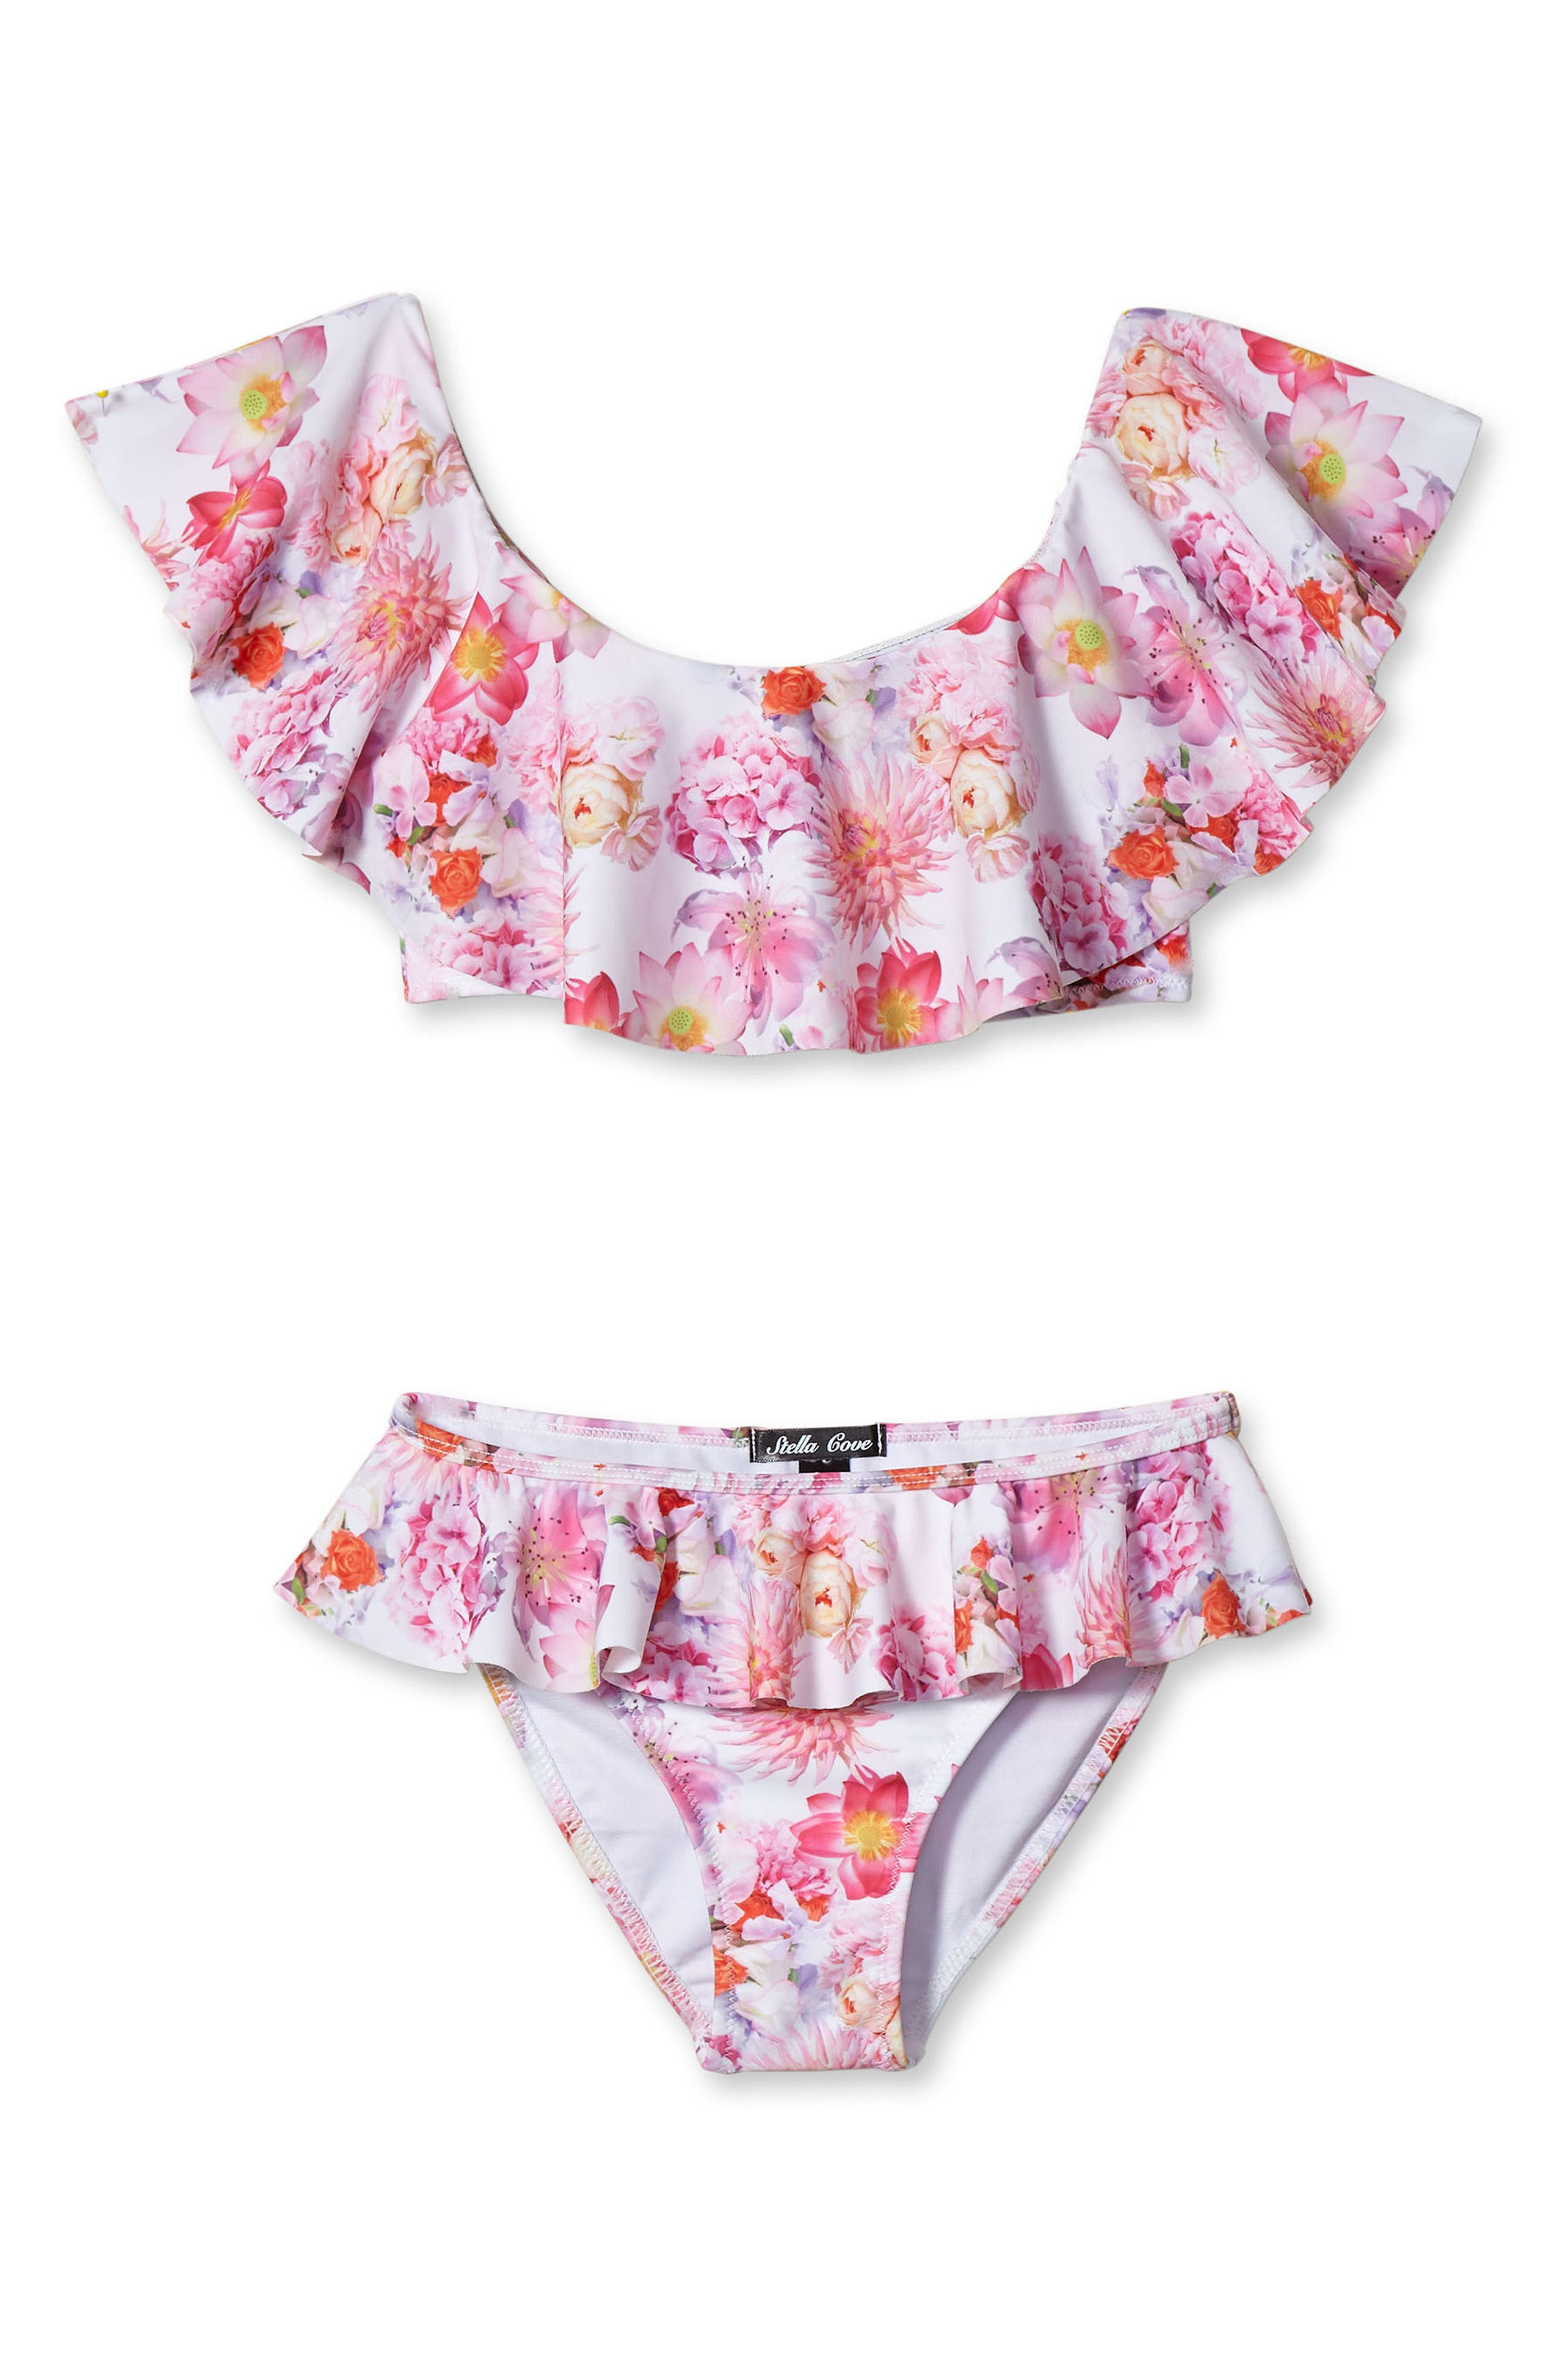 Floral Print Two-Piece Swimsuit,                             Main thumbnail 1, color,                             PIMK